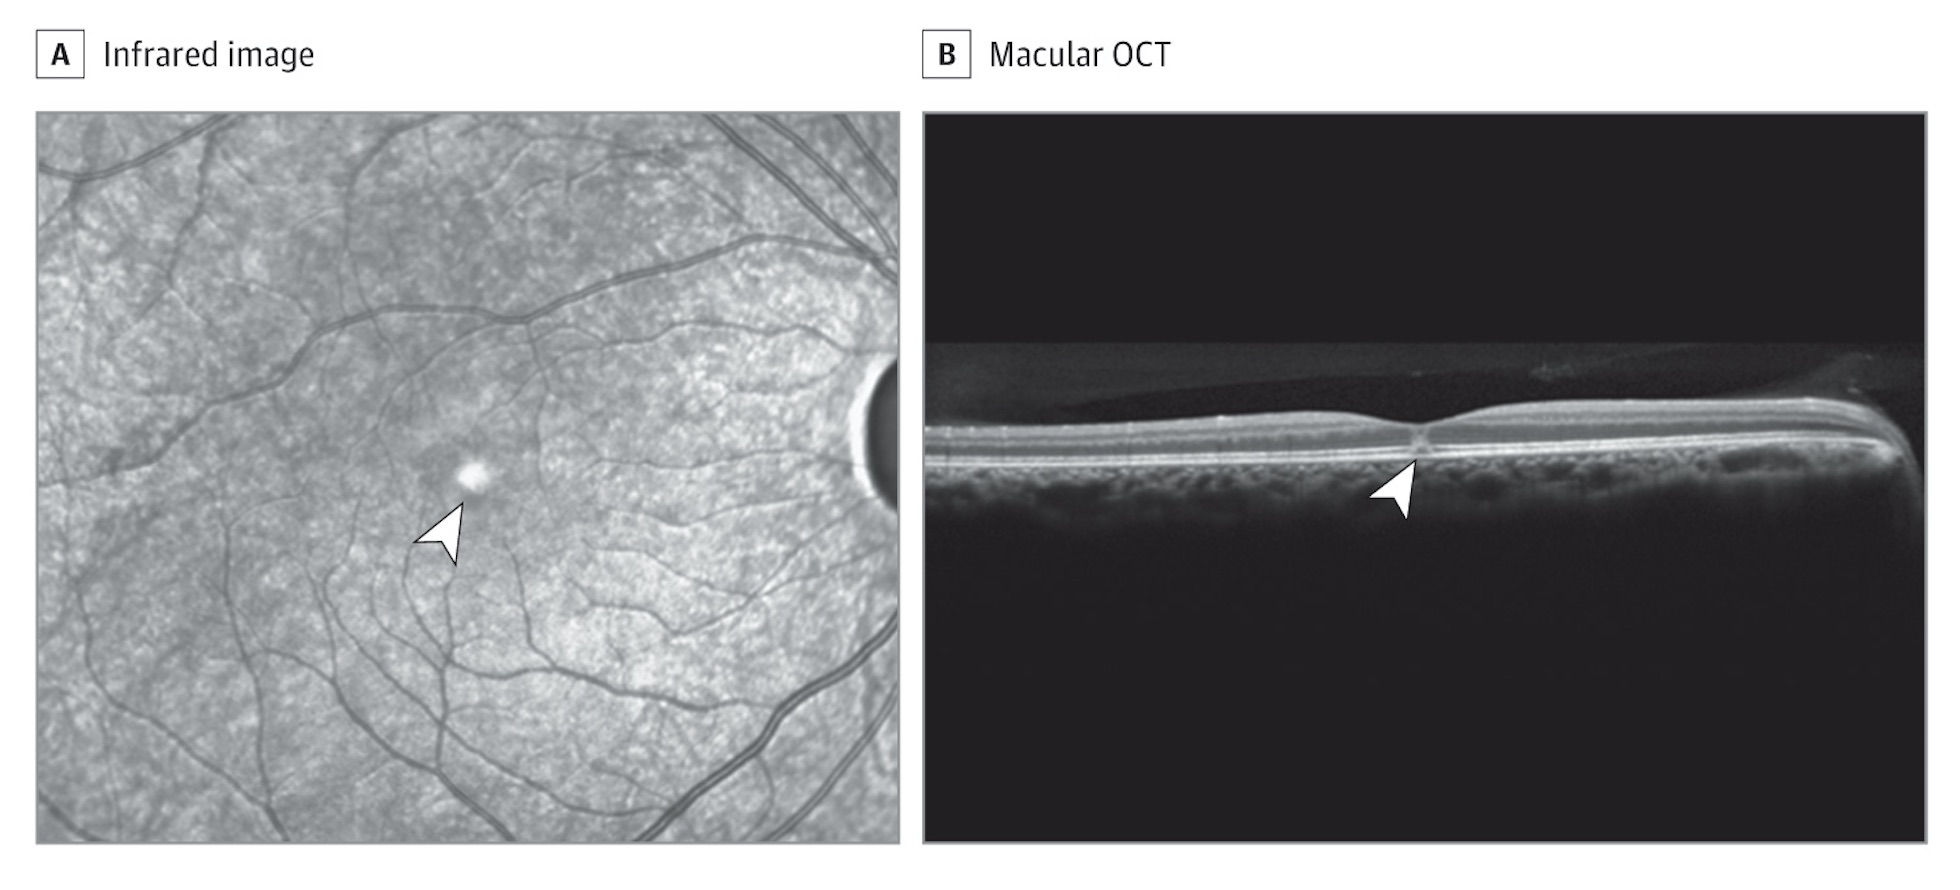 nfrared (A) and macular optical coherence tomography (OCT) (B) images demonstrating a hyperreflective spot in the fovea (arrowheads), presumably representing disruption of the inner and outer photoreceptor segments without evidence of underlying retinal pigment epithelial defects, consistent with bilateral solar retinopathy.